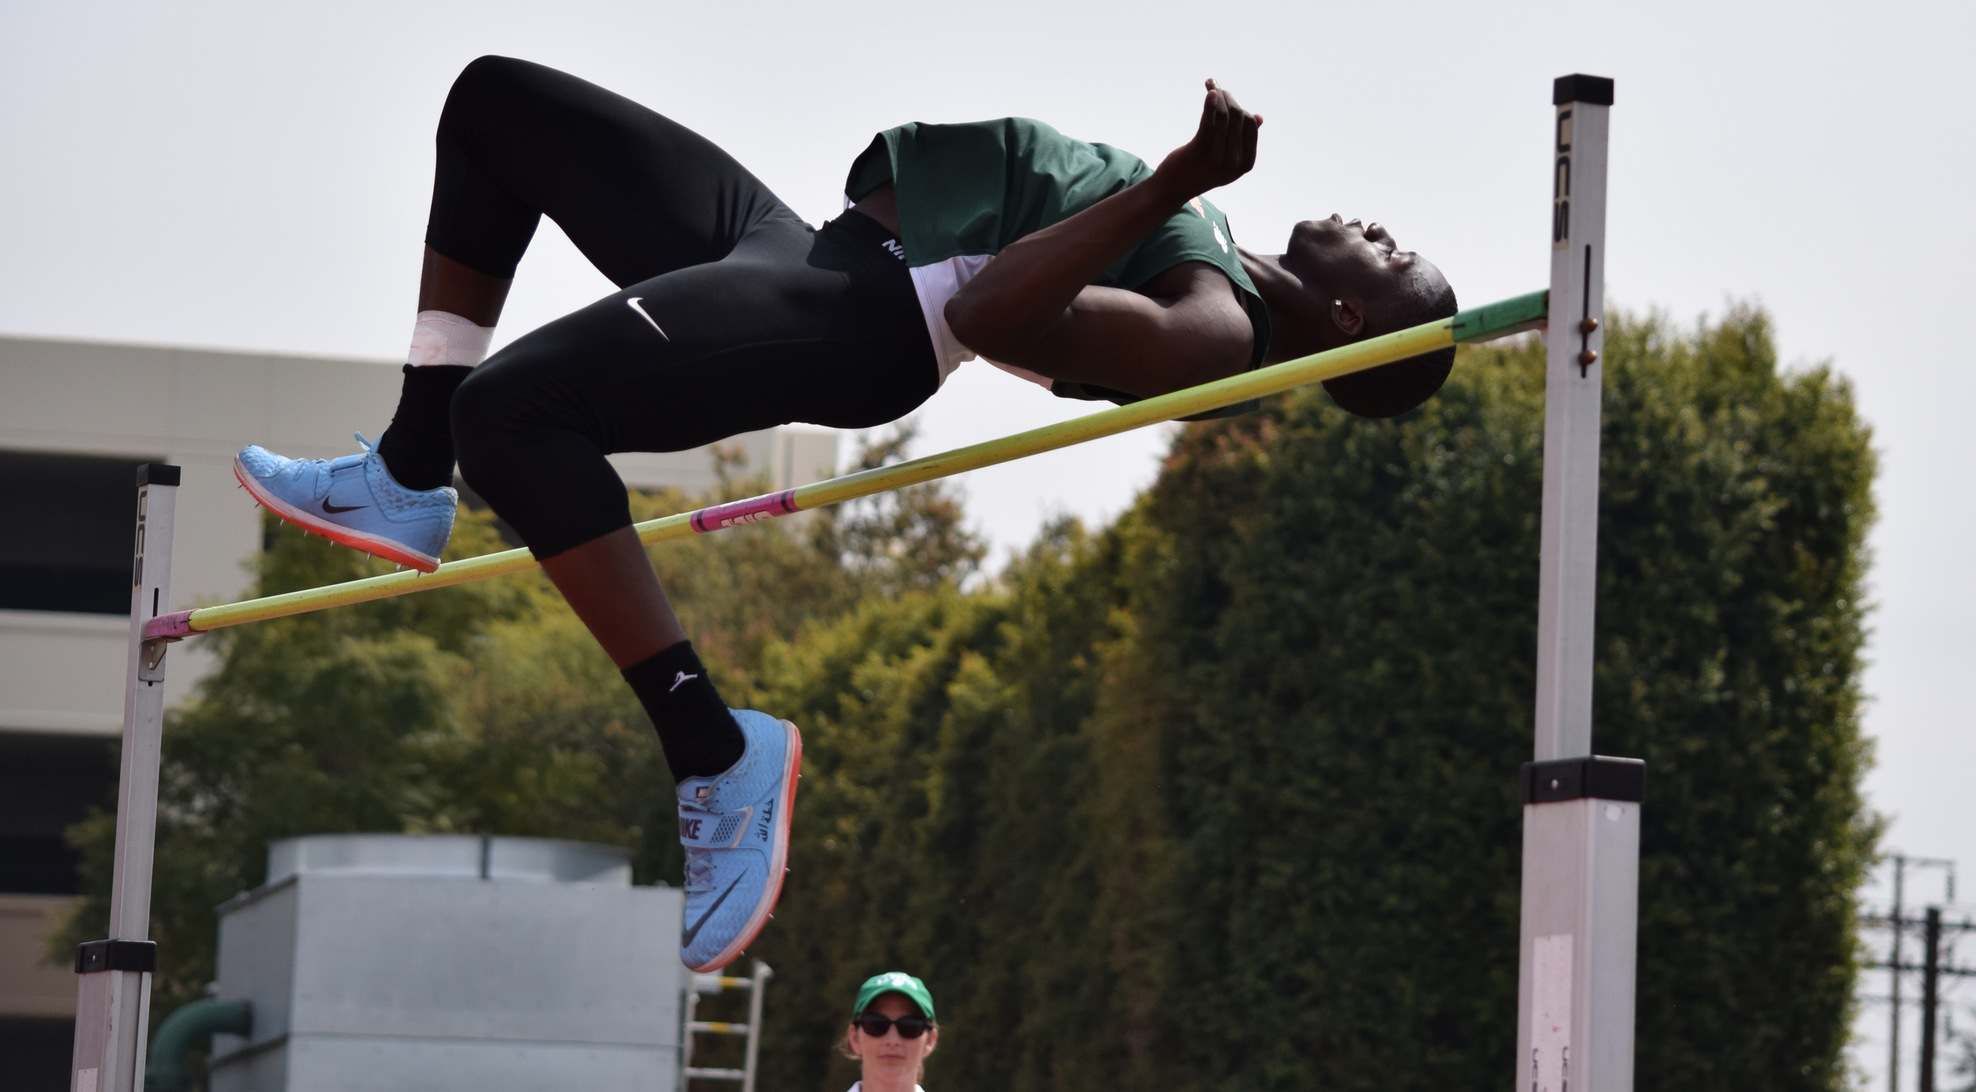 Hamilton, Ambat set high marks at Bryan Clay Invitational